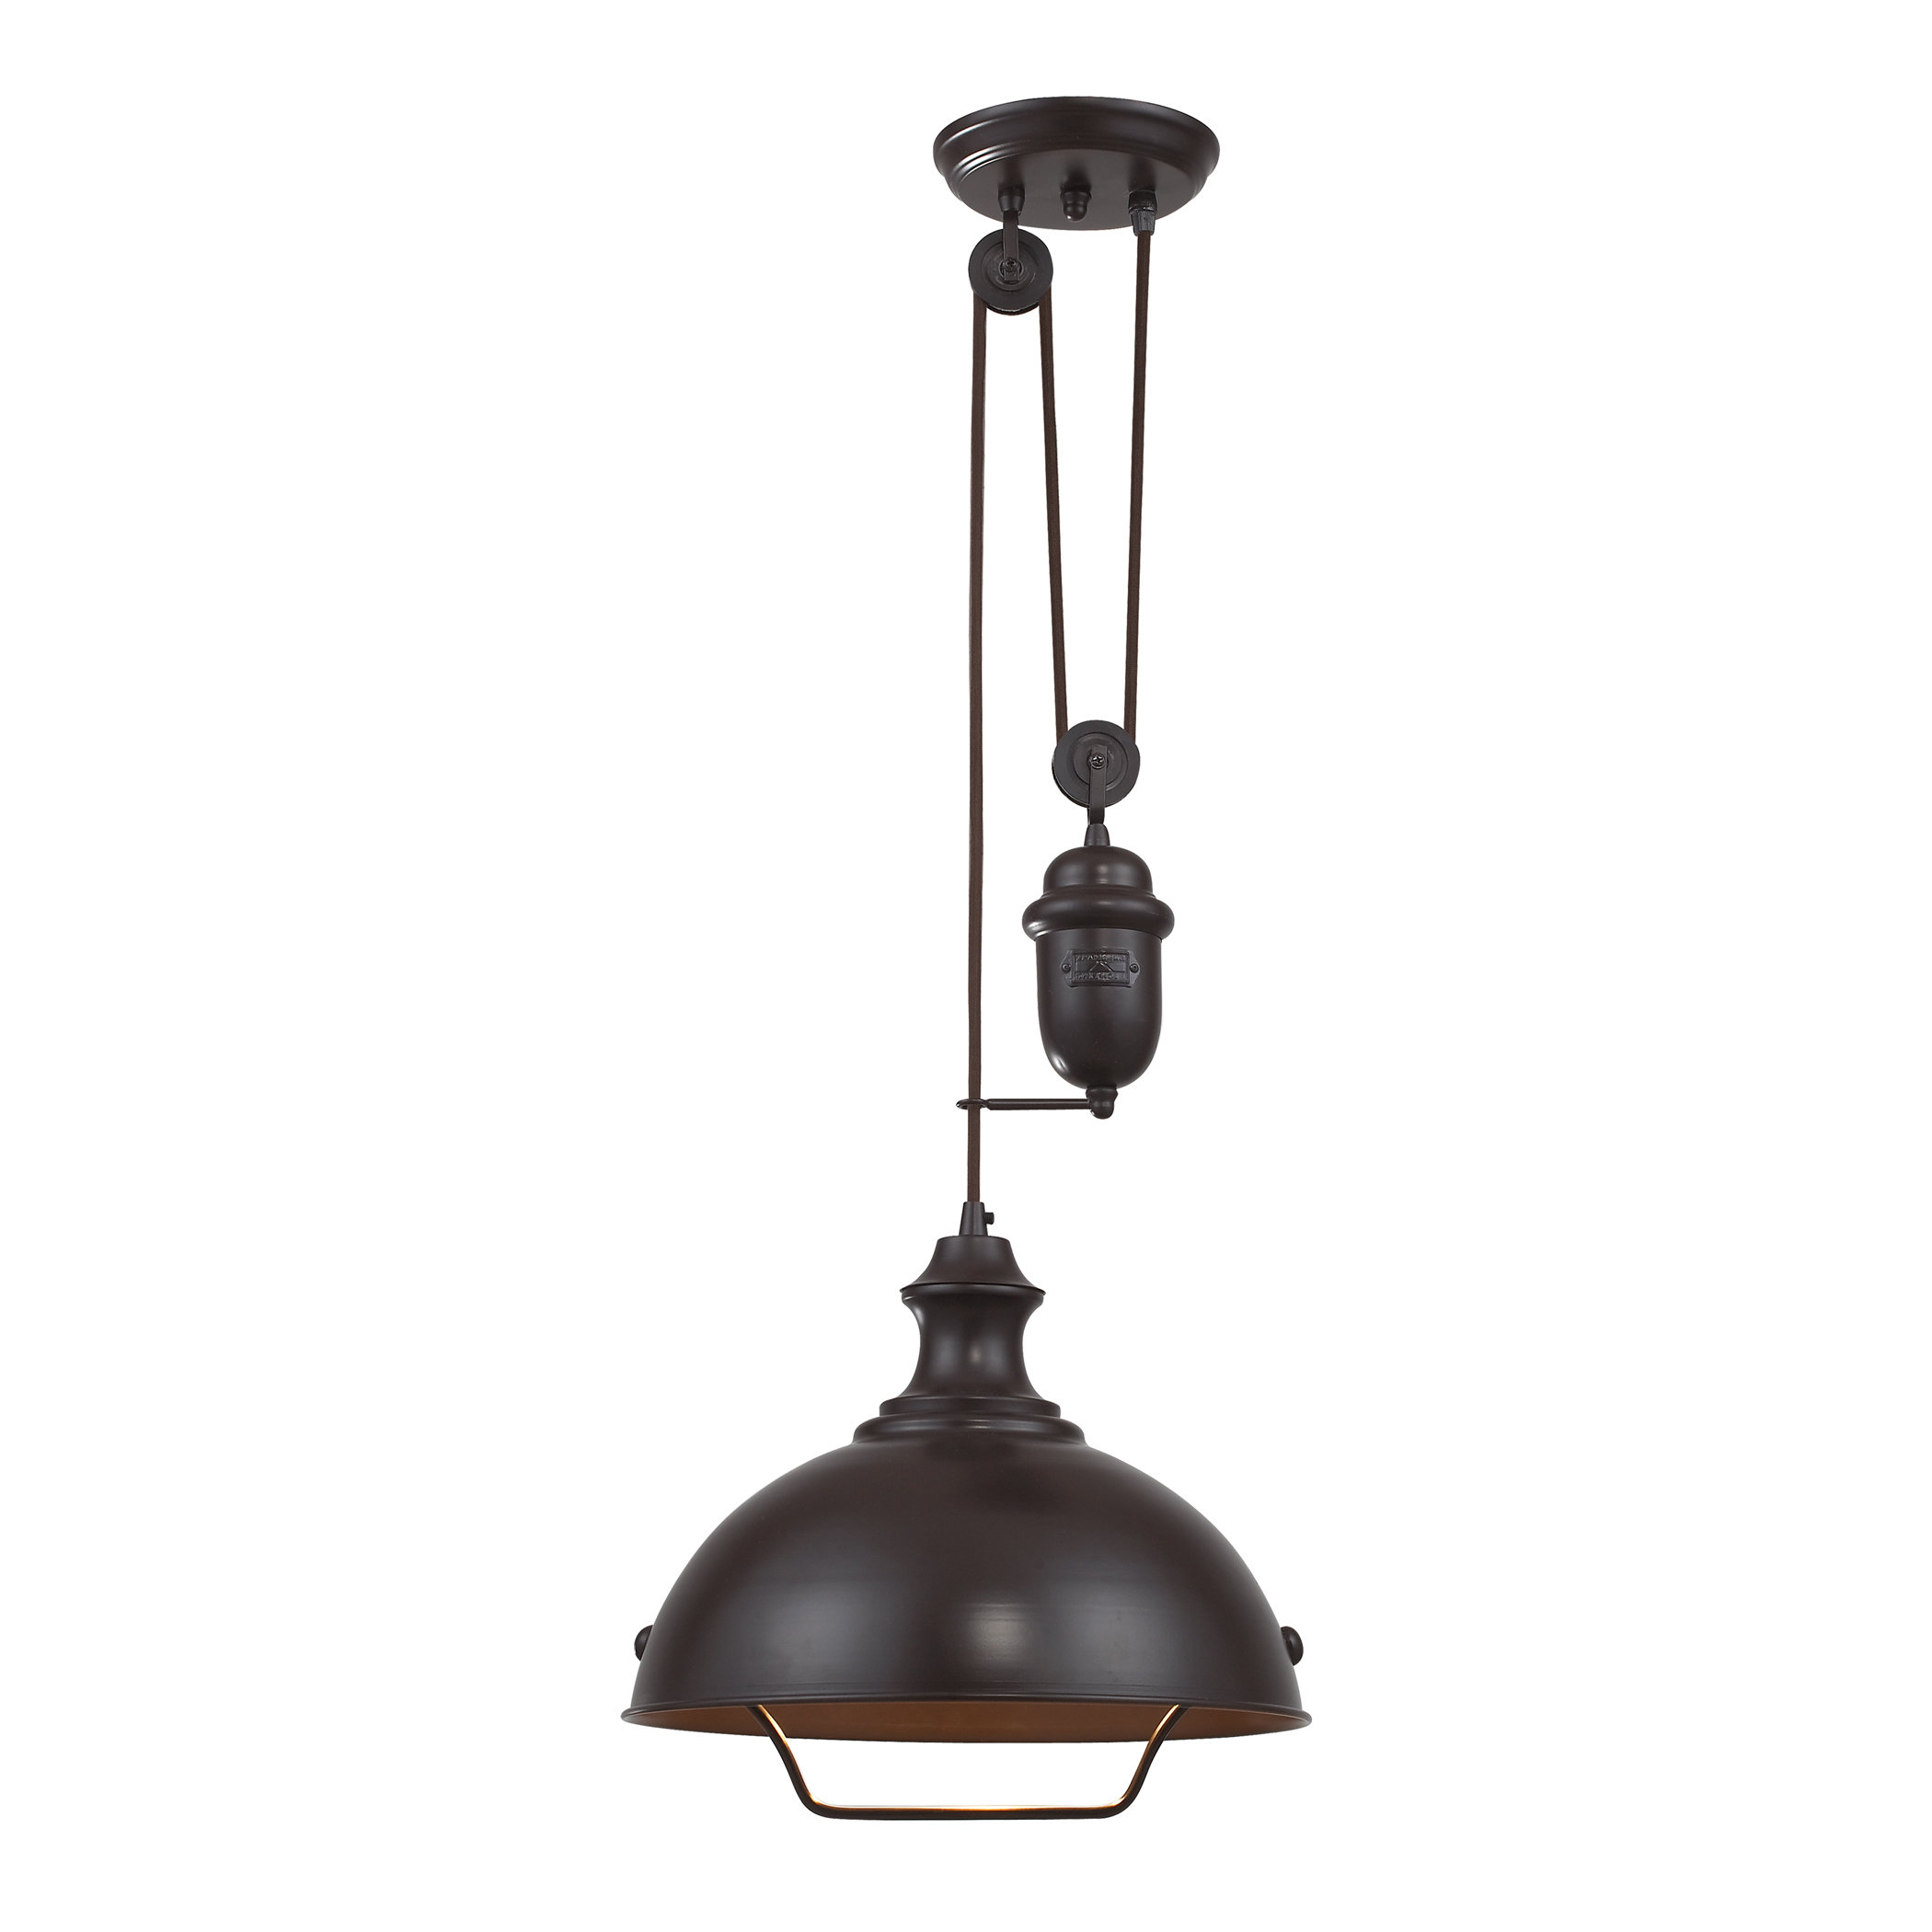 Abordale 1 Light Single Dome Pendants For Favorite Legrand 1 Light Single Dome Pendant (View 3 of 20)